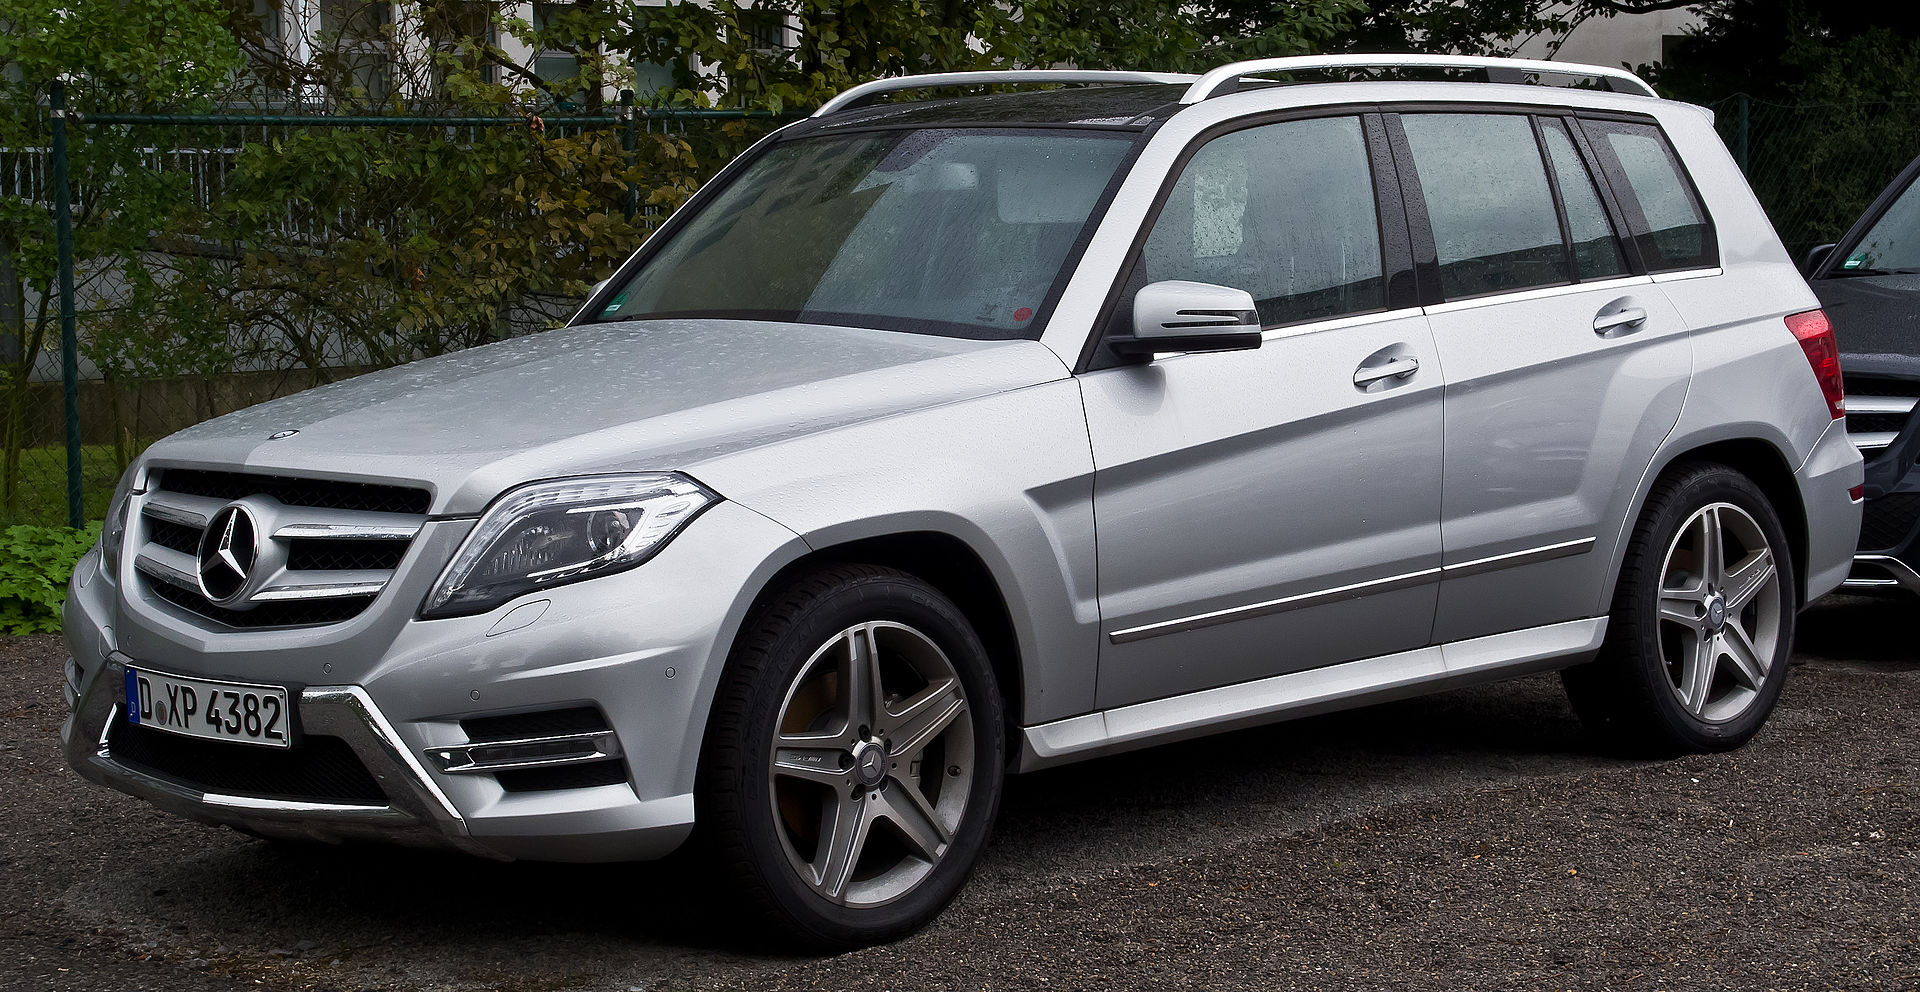 mercedes benz glk class wikipedia. Black Bedroom Furniture Sets. Home Design Ideas